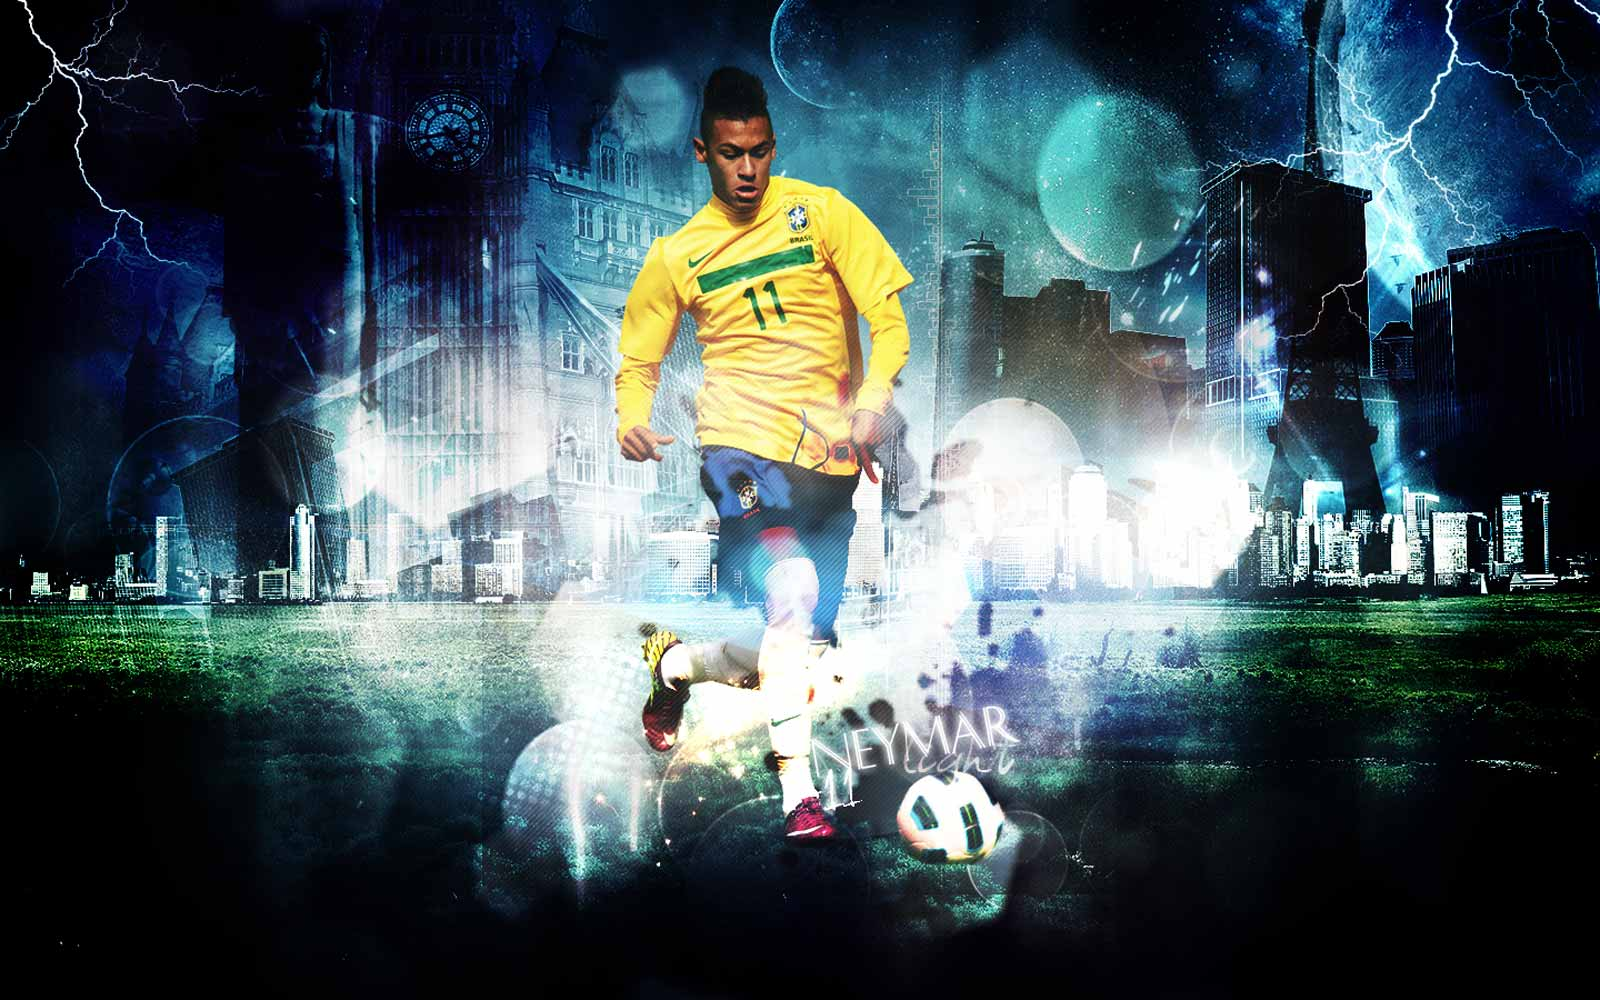 Soccerwallpaper.mackafe.com - Neymar - Top Wallpaper HD- Download ...